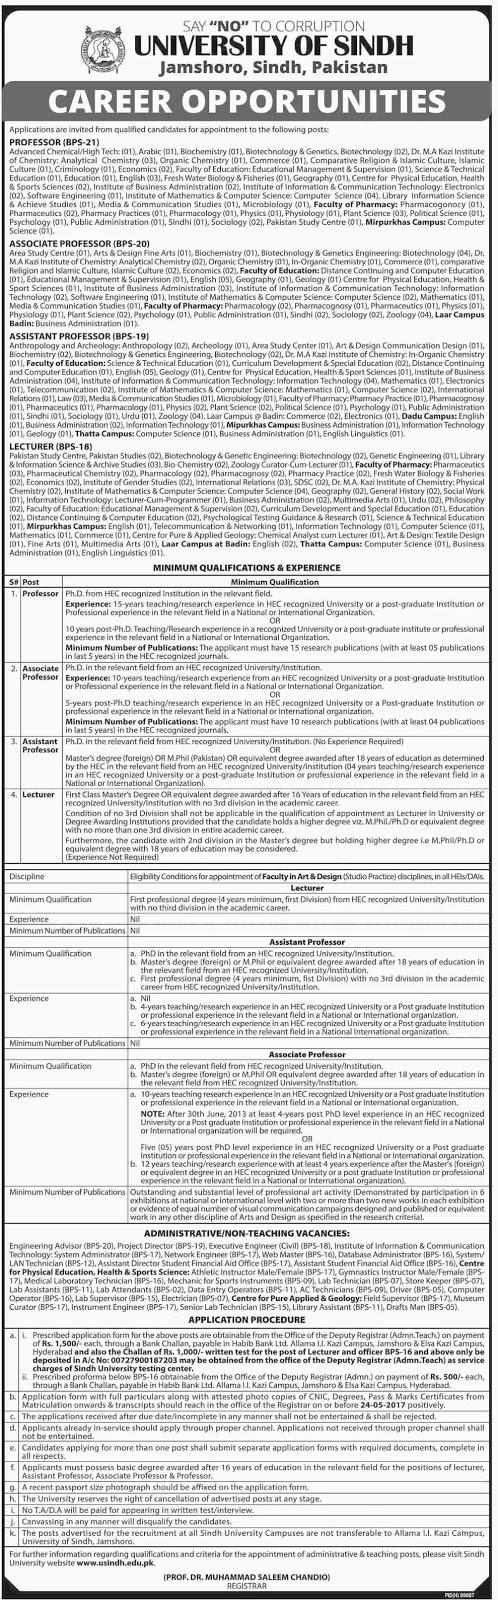 University Of Sindh Jamshoro Faculty Staff Required 27 Apr 2017